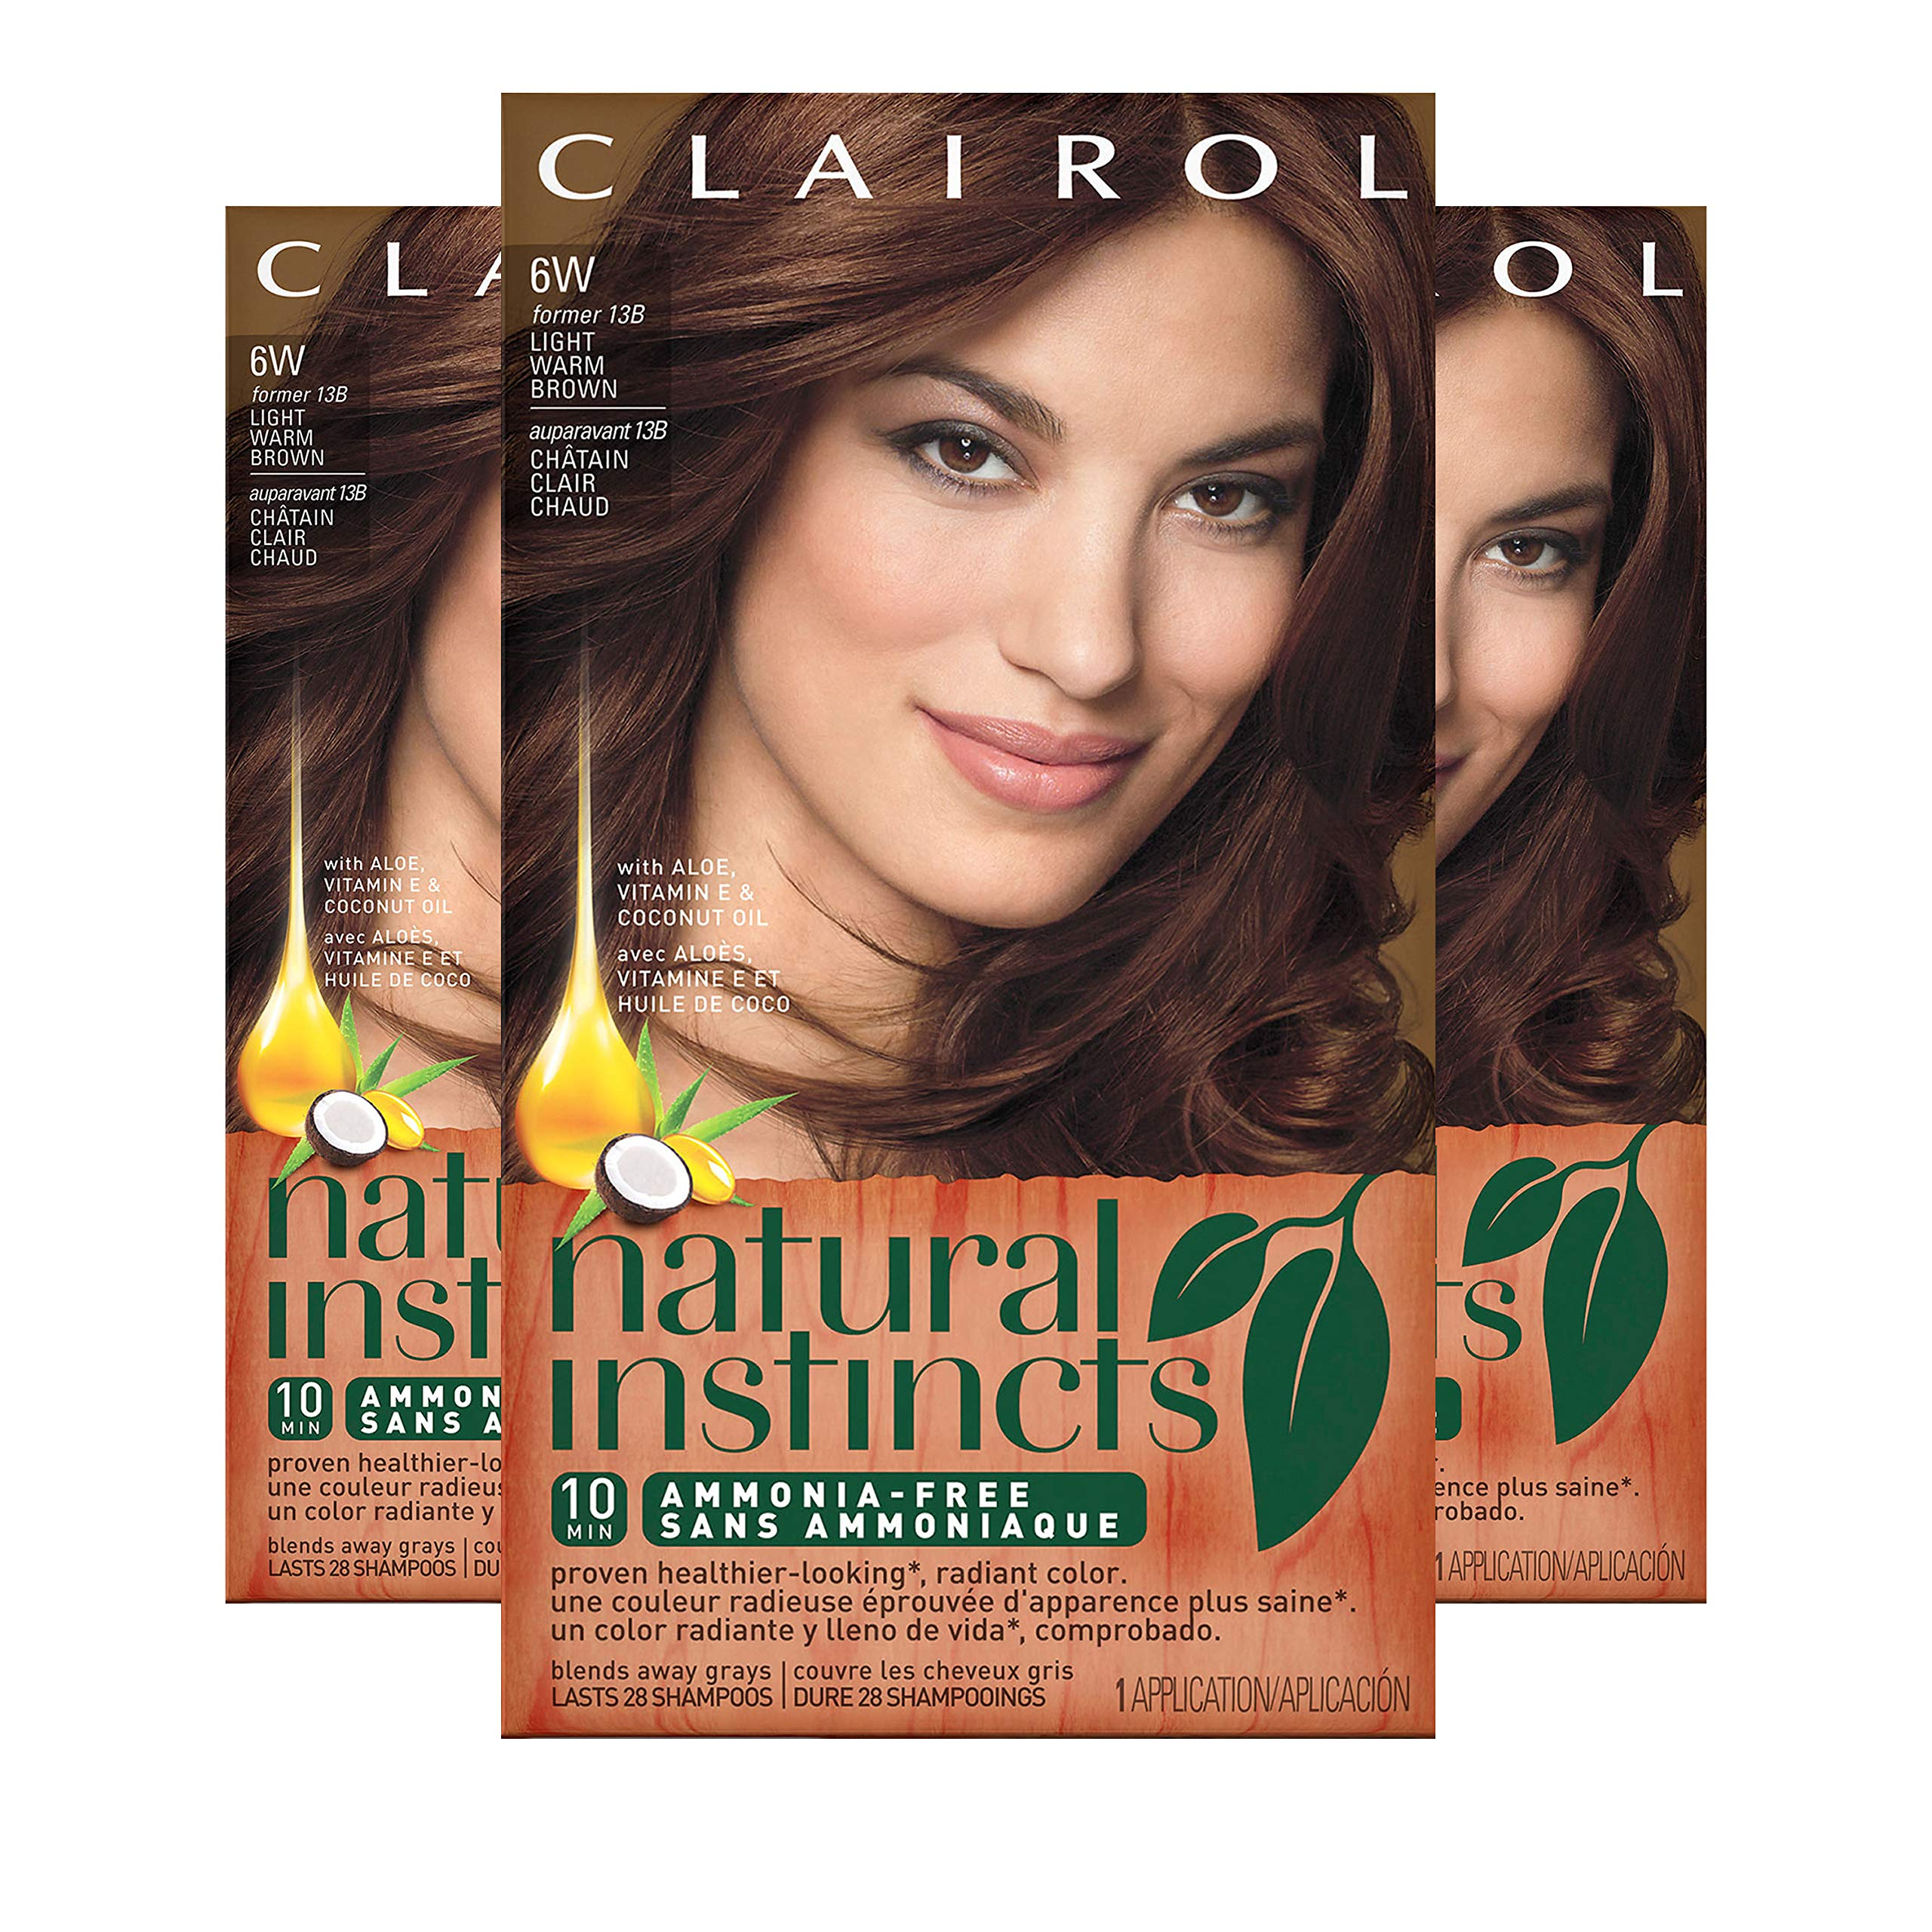 Clairol Natural Instincts Hair Color, Shade 6w/13b Spiced Cider Light Warm Brown, 3 Count by Clairol